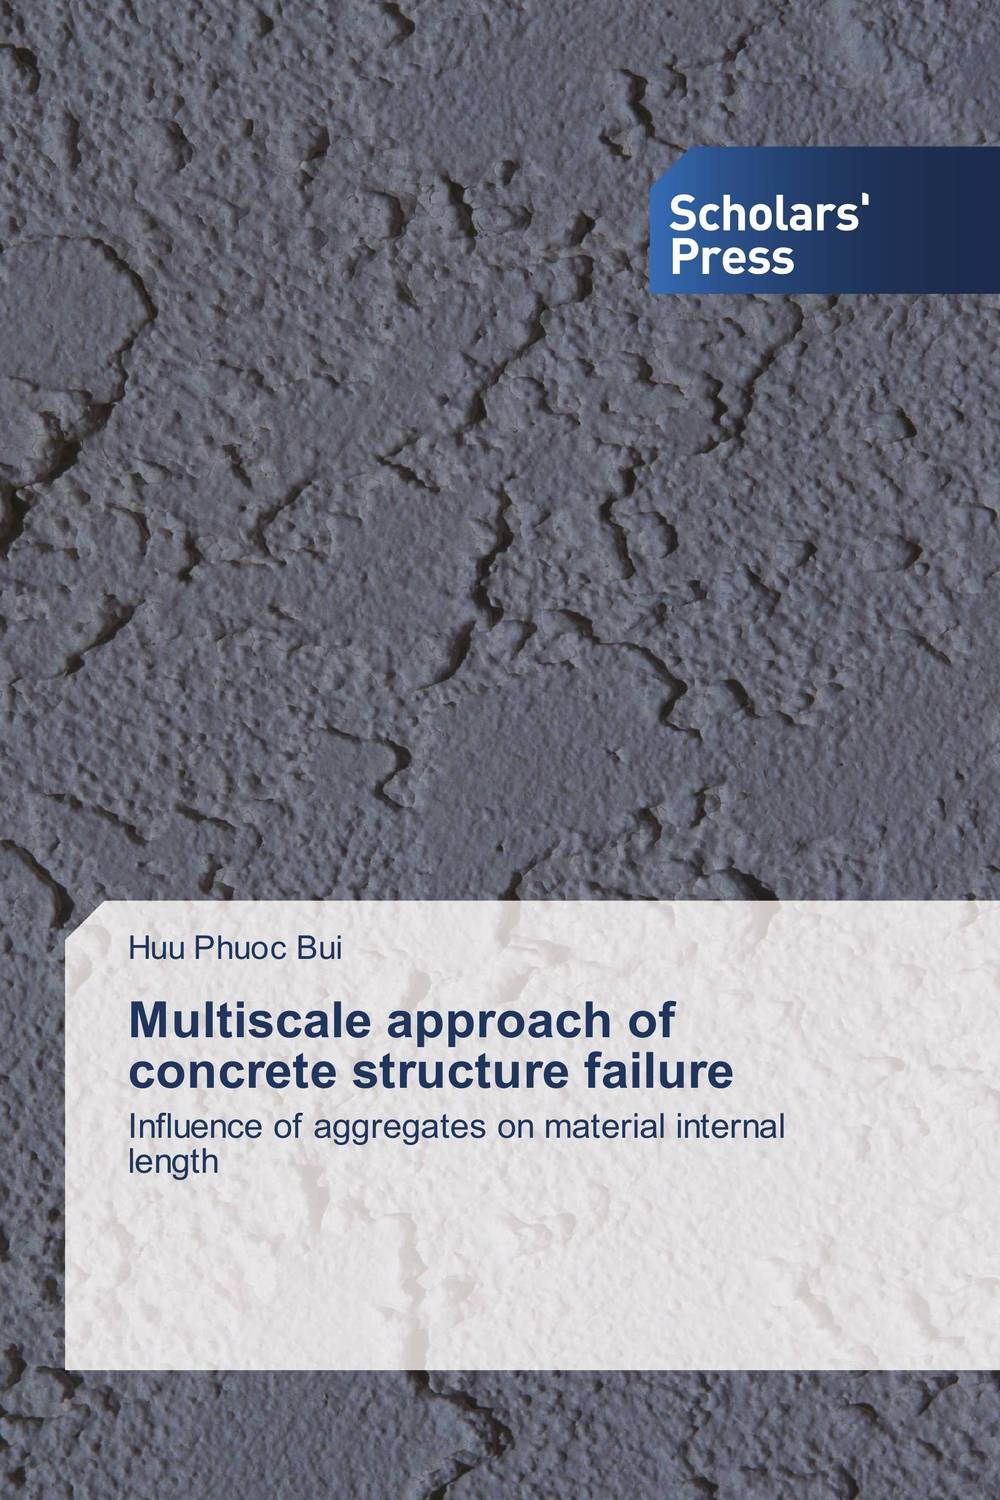 Multiscale approach of concrete structure failure constitutive modeling of frp confined concrete from damage mechanics